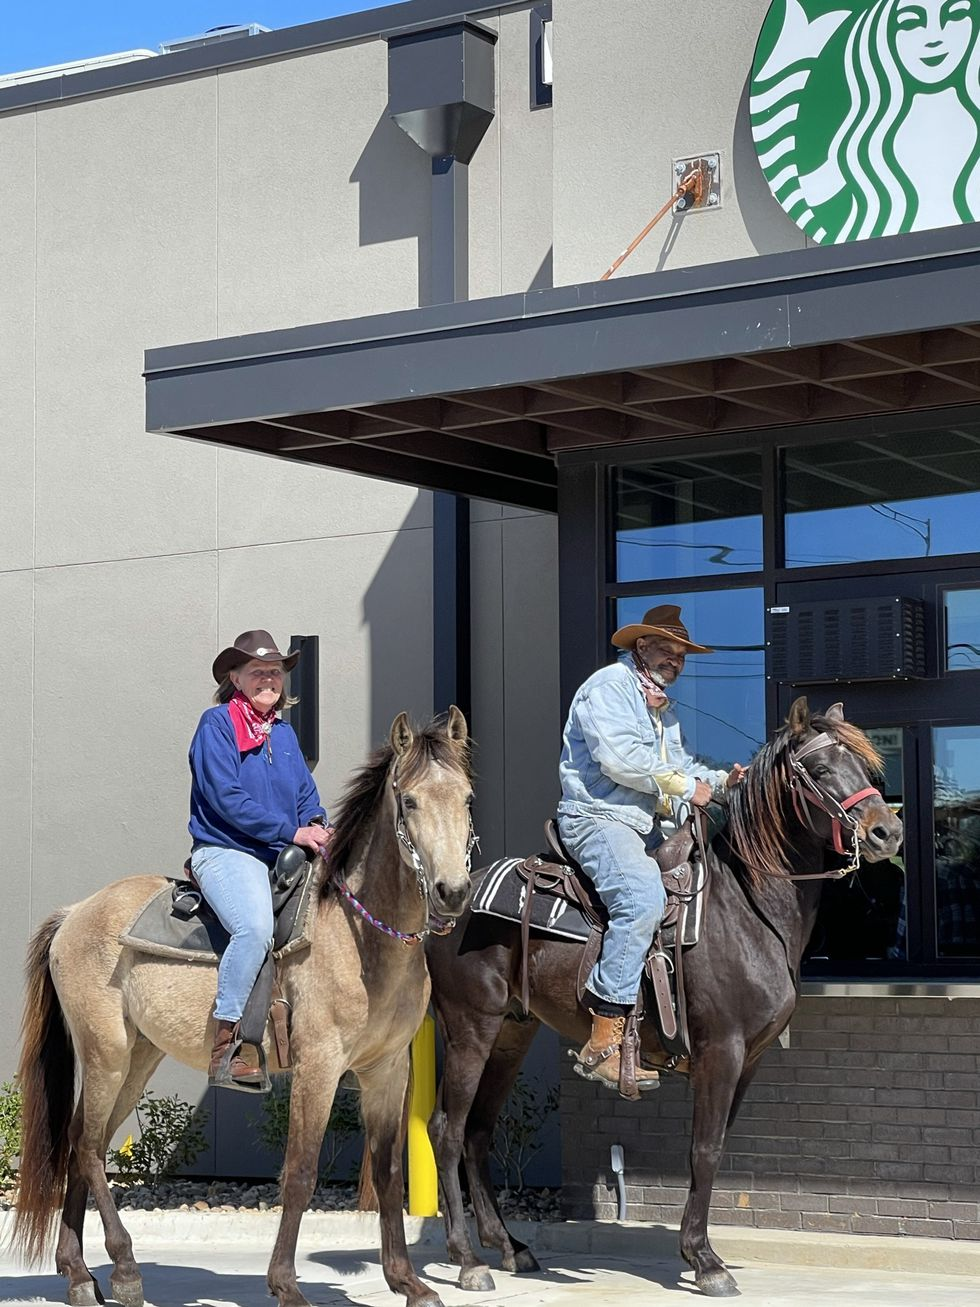 This pair was spotted Monday, March 29, 2021 in line at a new Starbucks that just opened in...